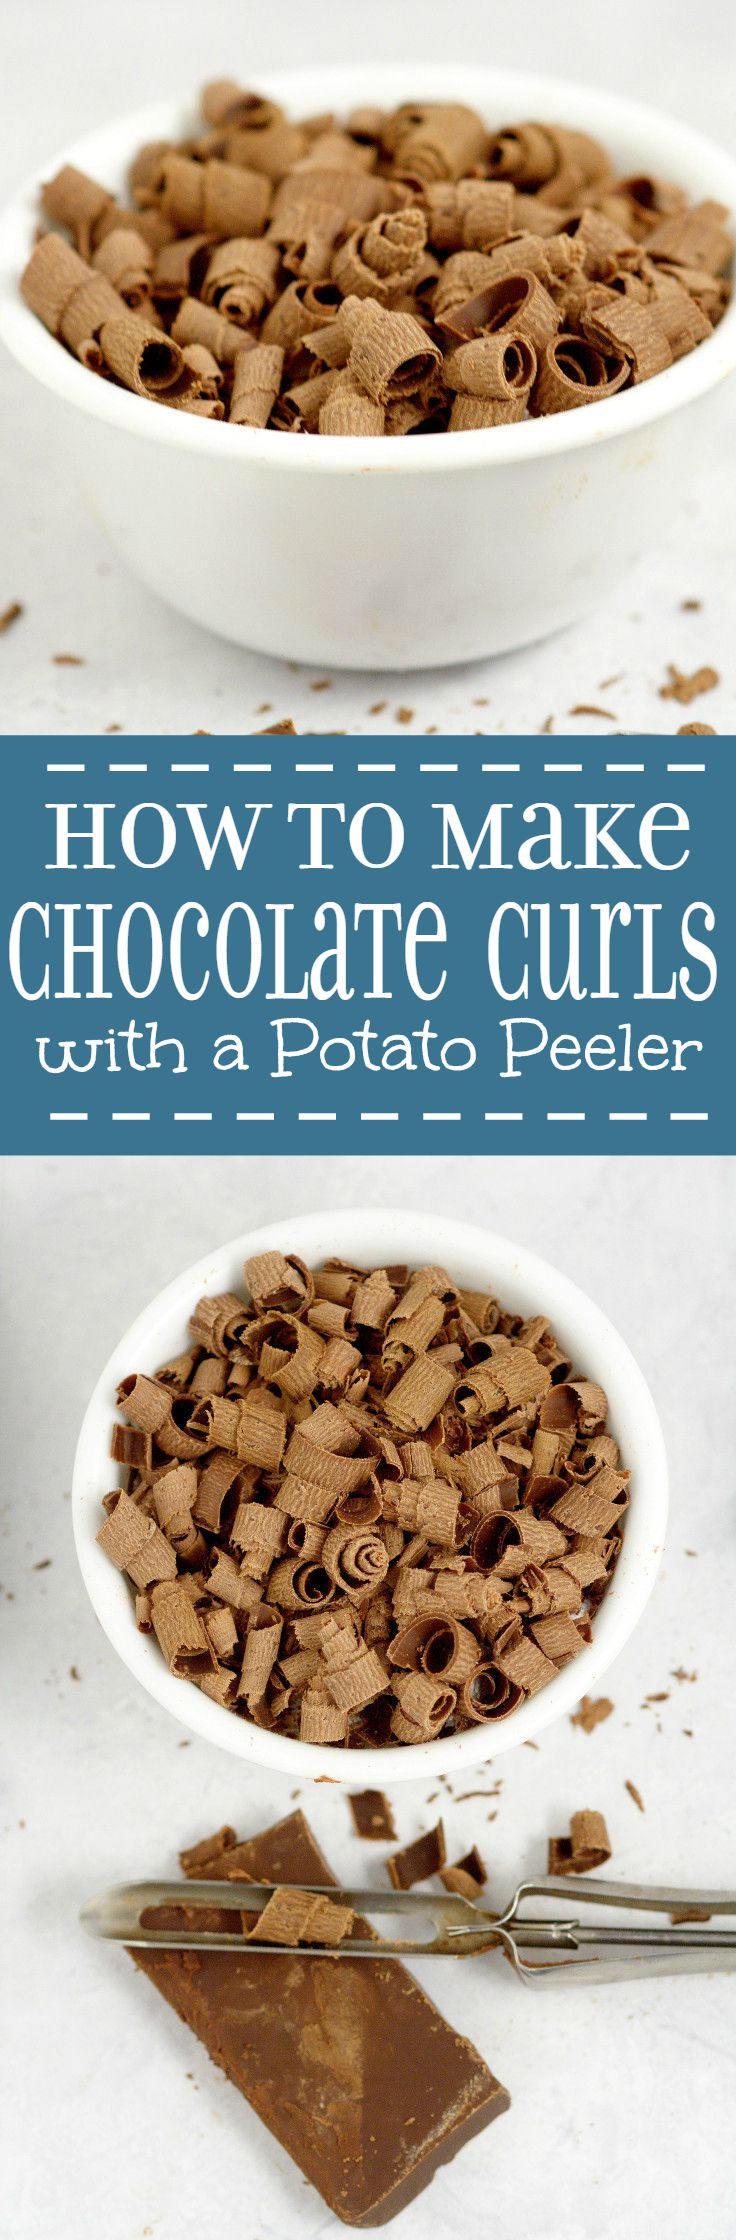 Learn how to make chocolate curls with a potato peeler the easy way for beautiful chocolate curls to complement your desserts!  cooking tips | baking tips | kitchen tips